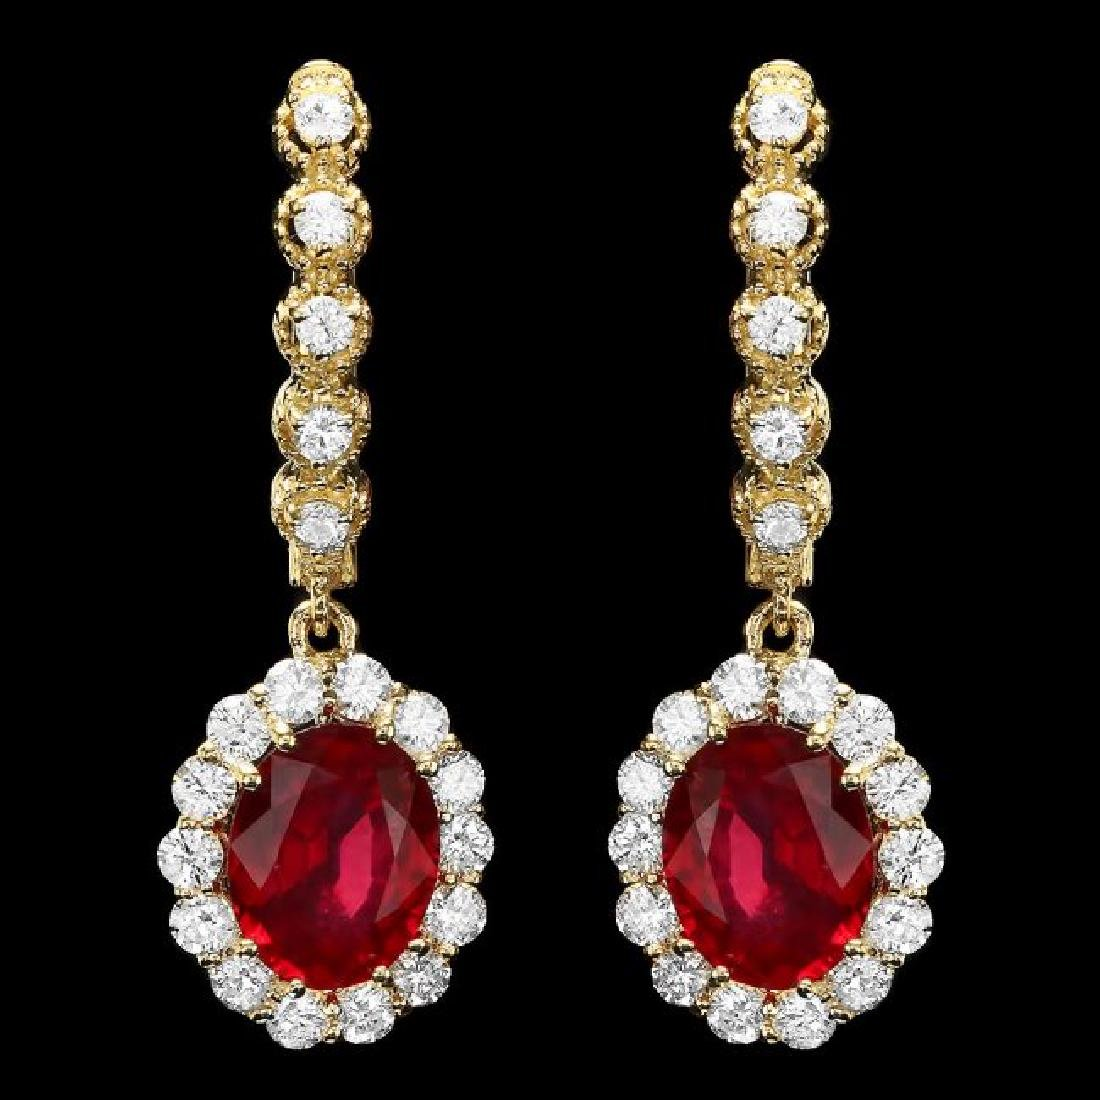 14k Gold 5.3ct Ruby 1.40ct Diamond Earrings